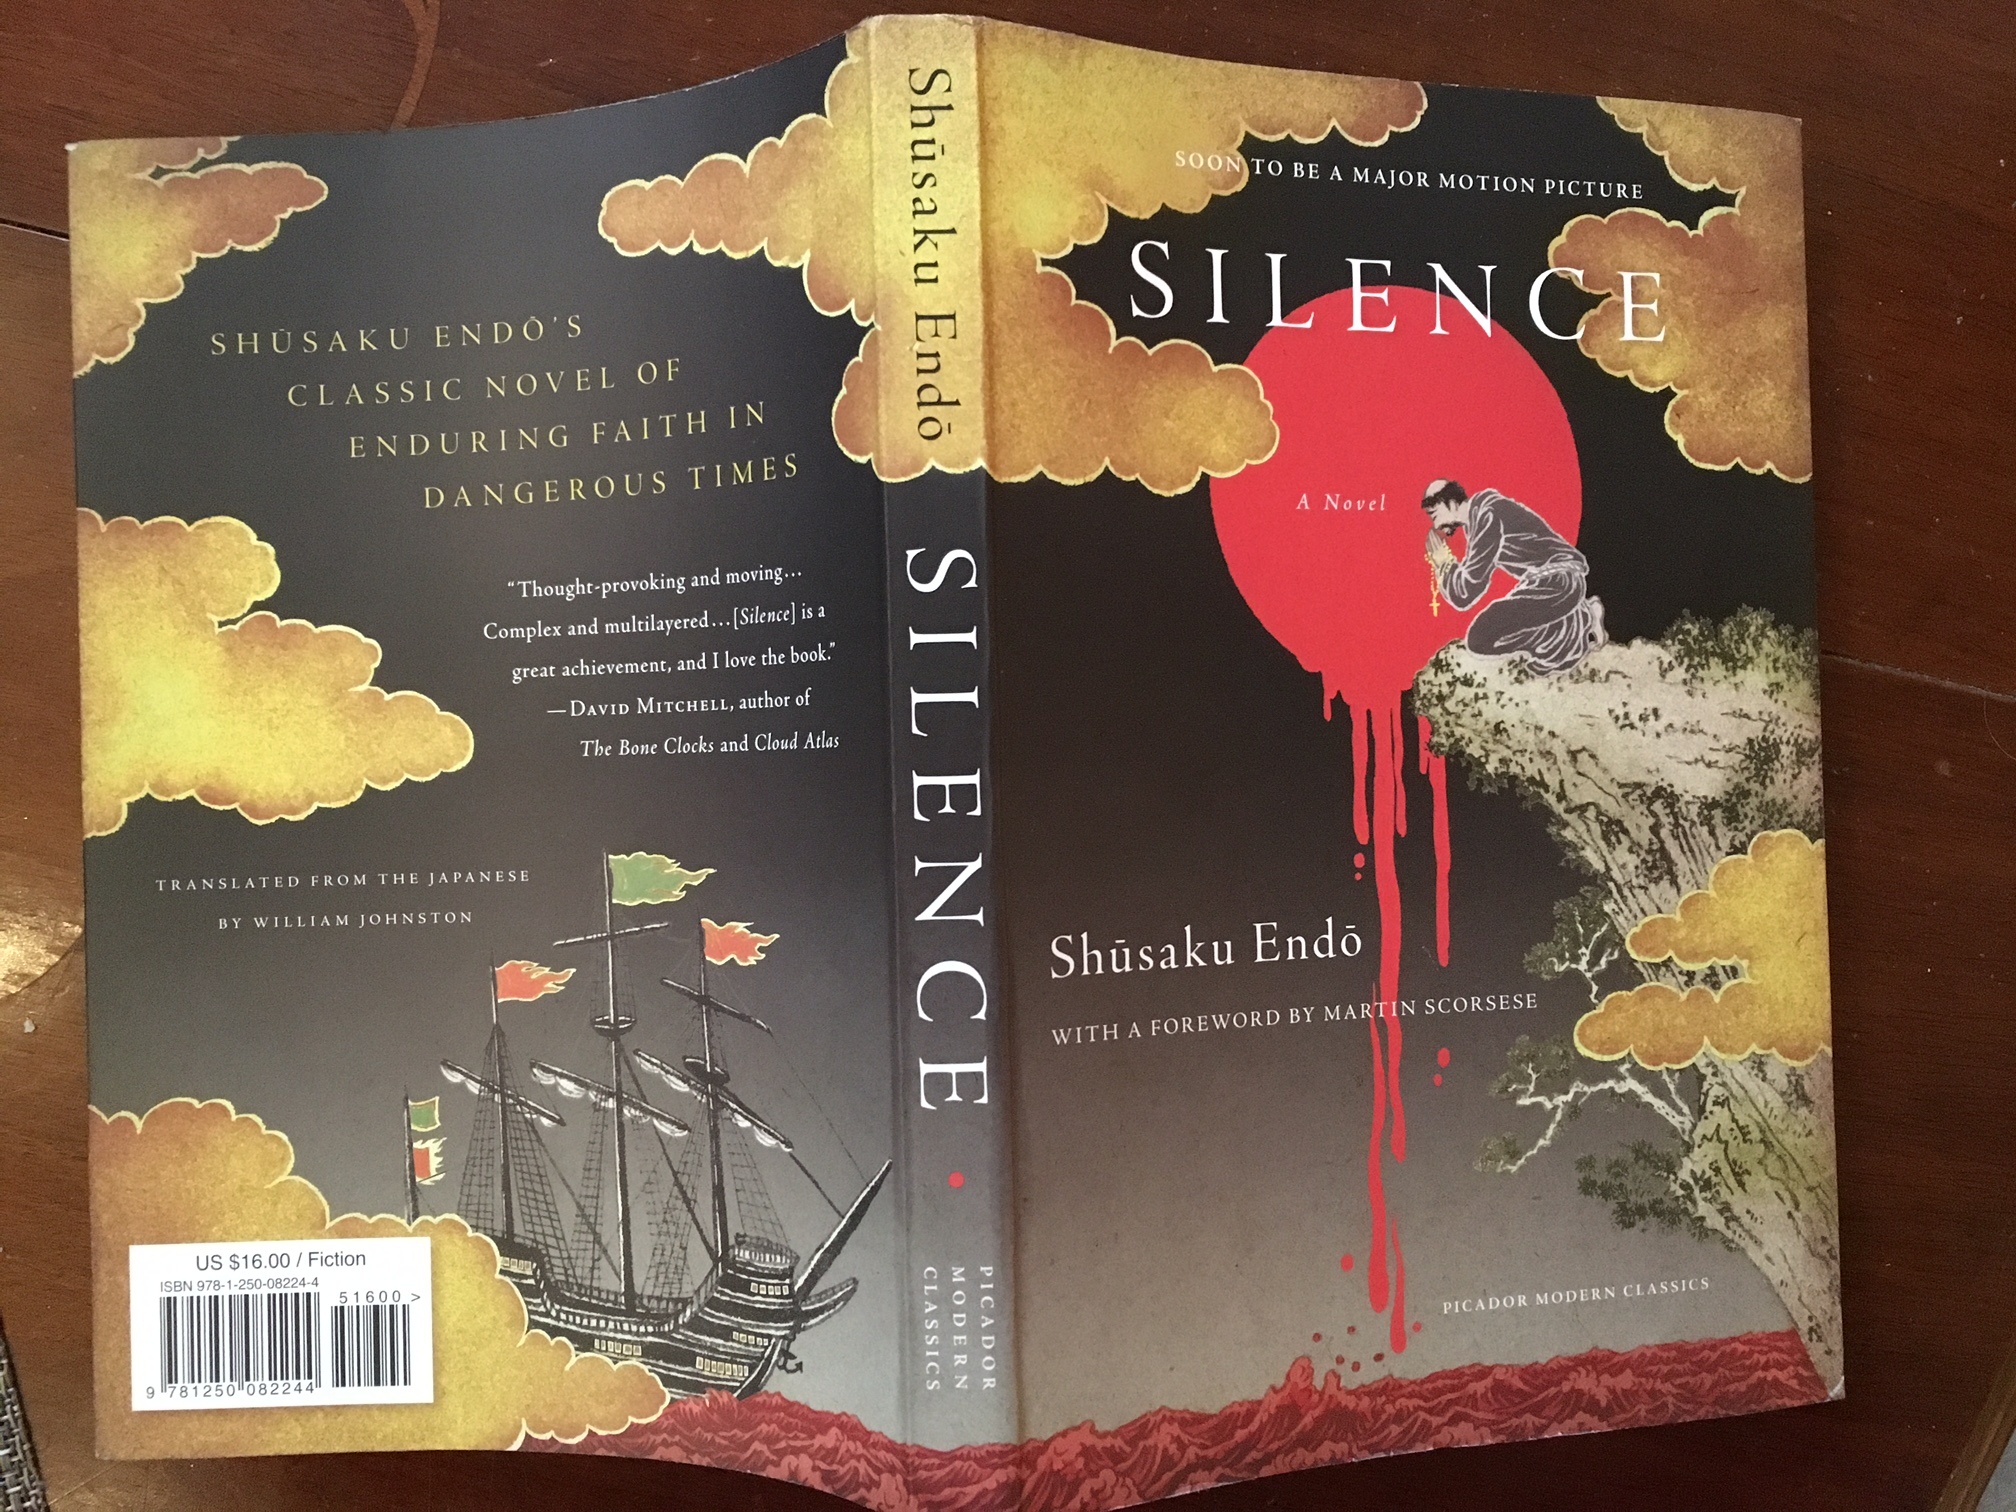 motif in silence by shusaku endo The meaning of silence: shusaku endo's silence by shusaku endo the story of silence is one that stirs there is an ongoing motif of silence rendered by endo.